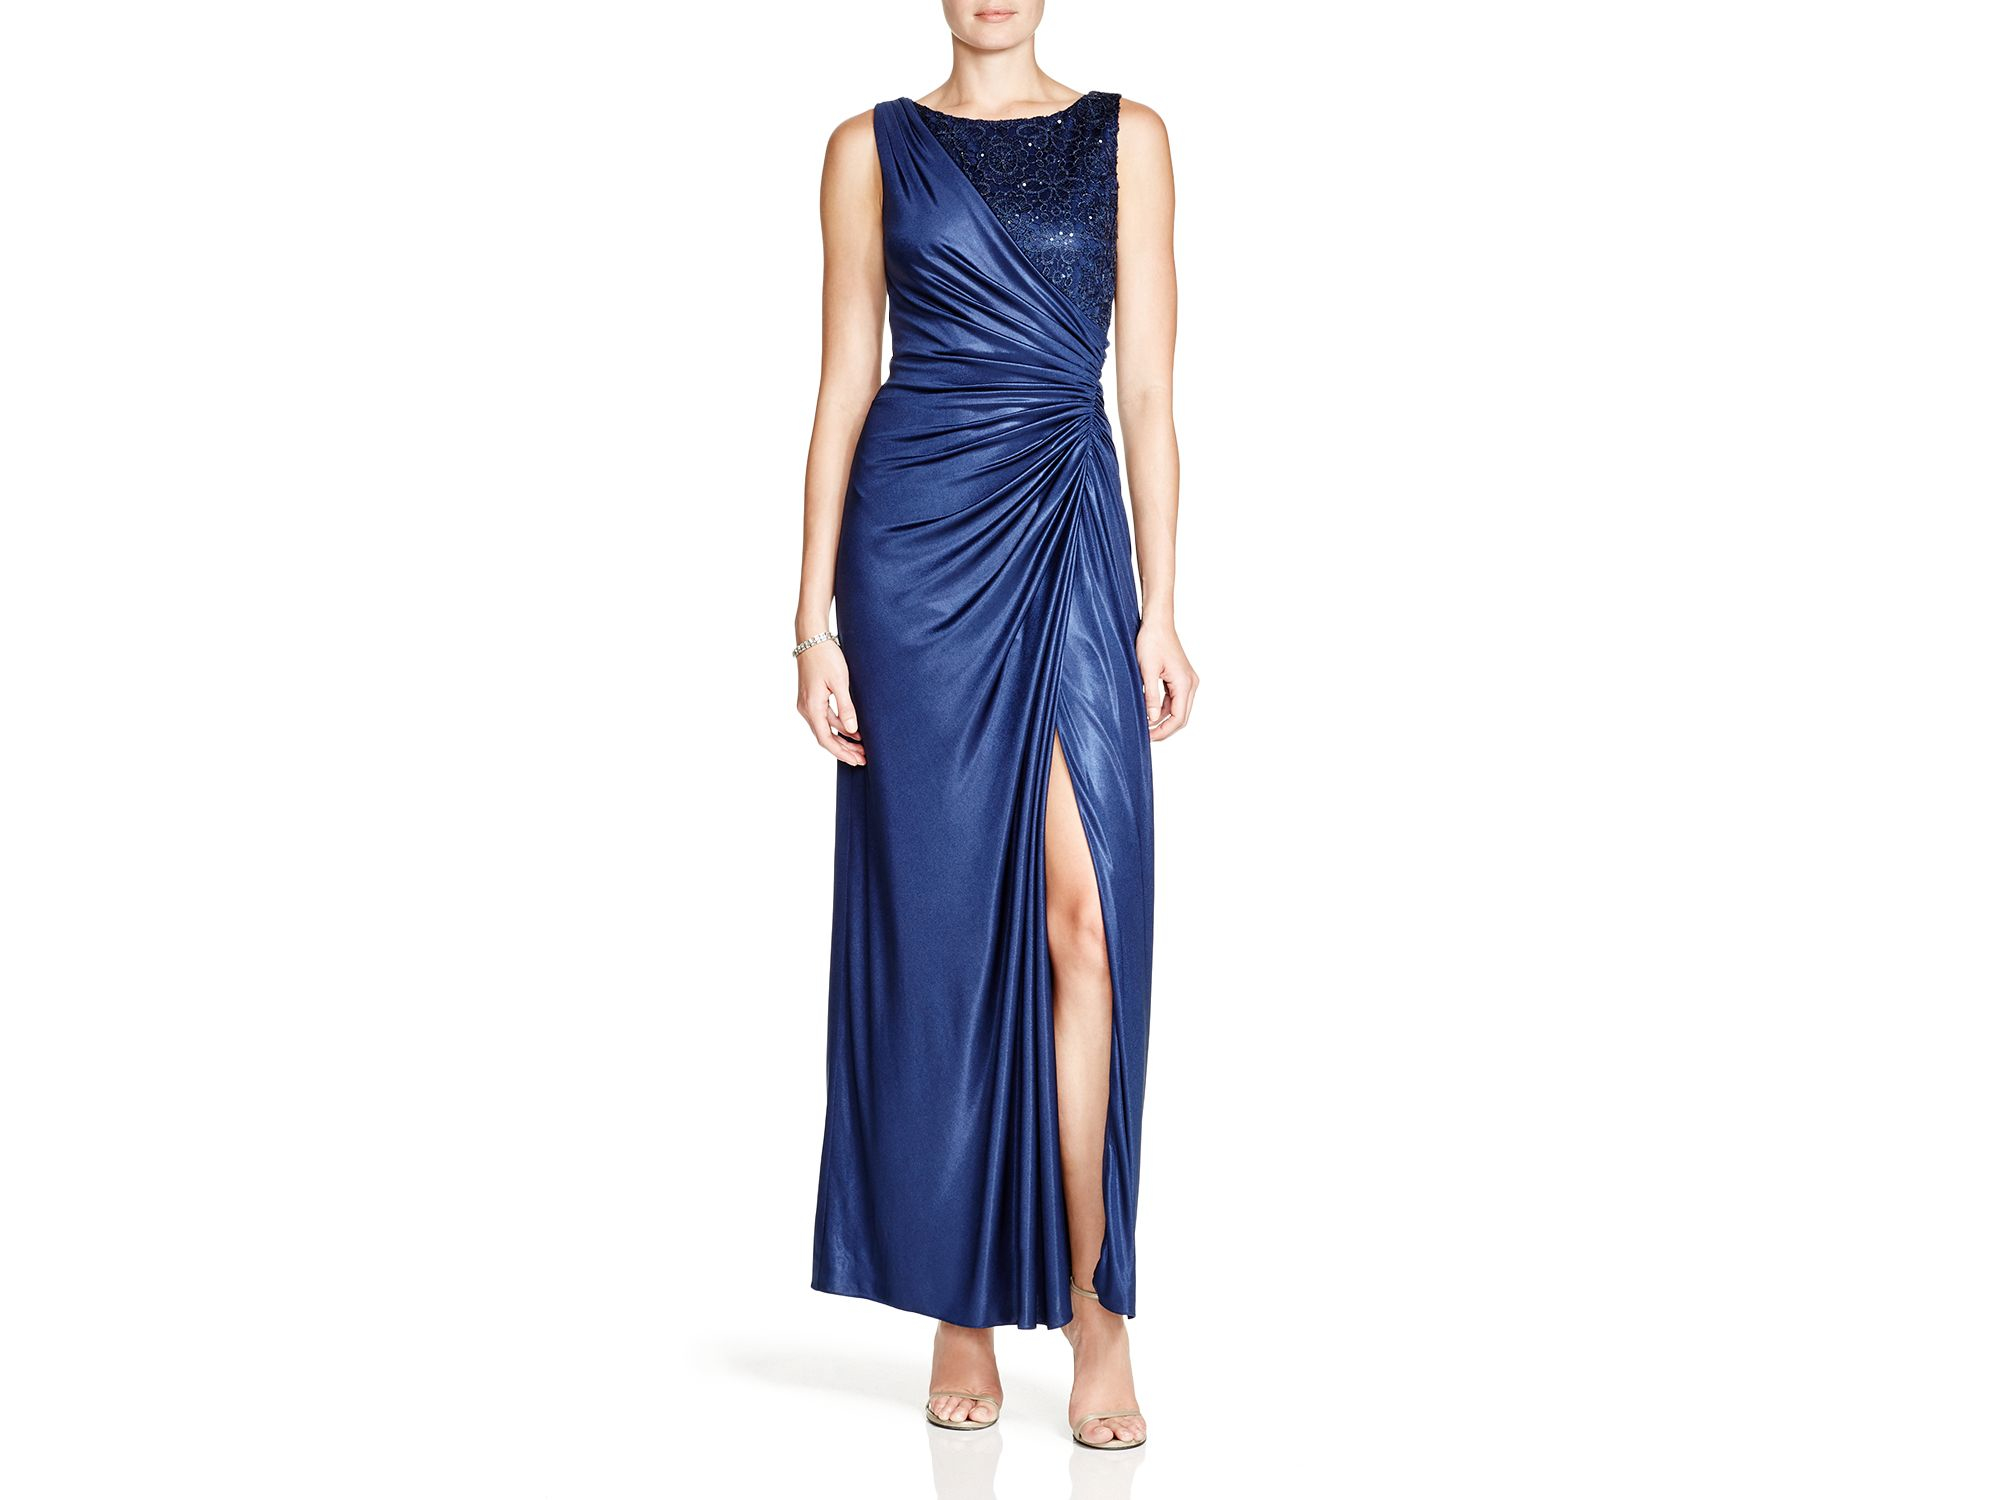 Lyst - Adrianna Papell Sleeveless Lace & Matte Jersey Gown in Blue